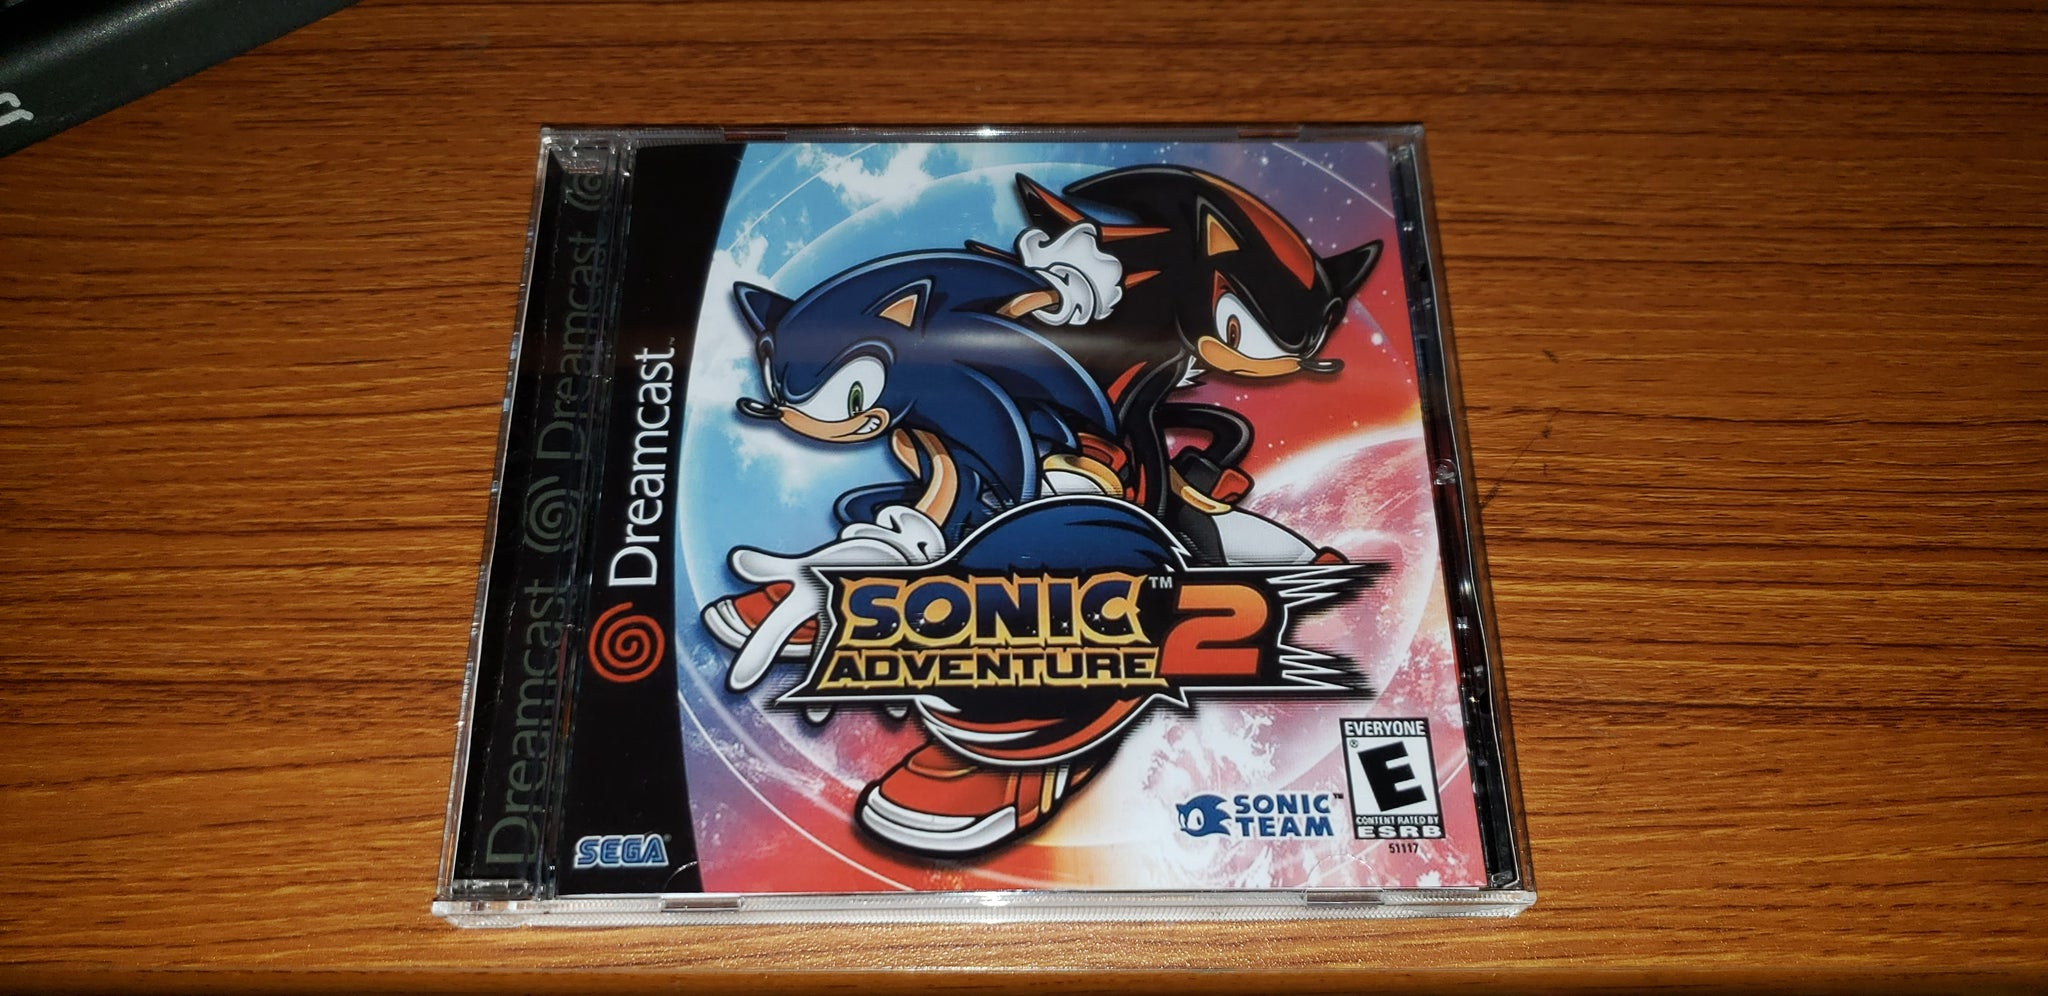 Sonic Adventure 2 Sega Dreamcast Reproduction